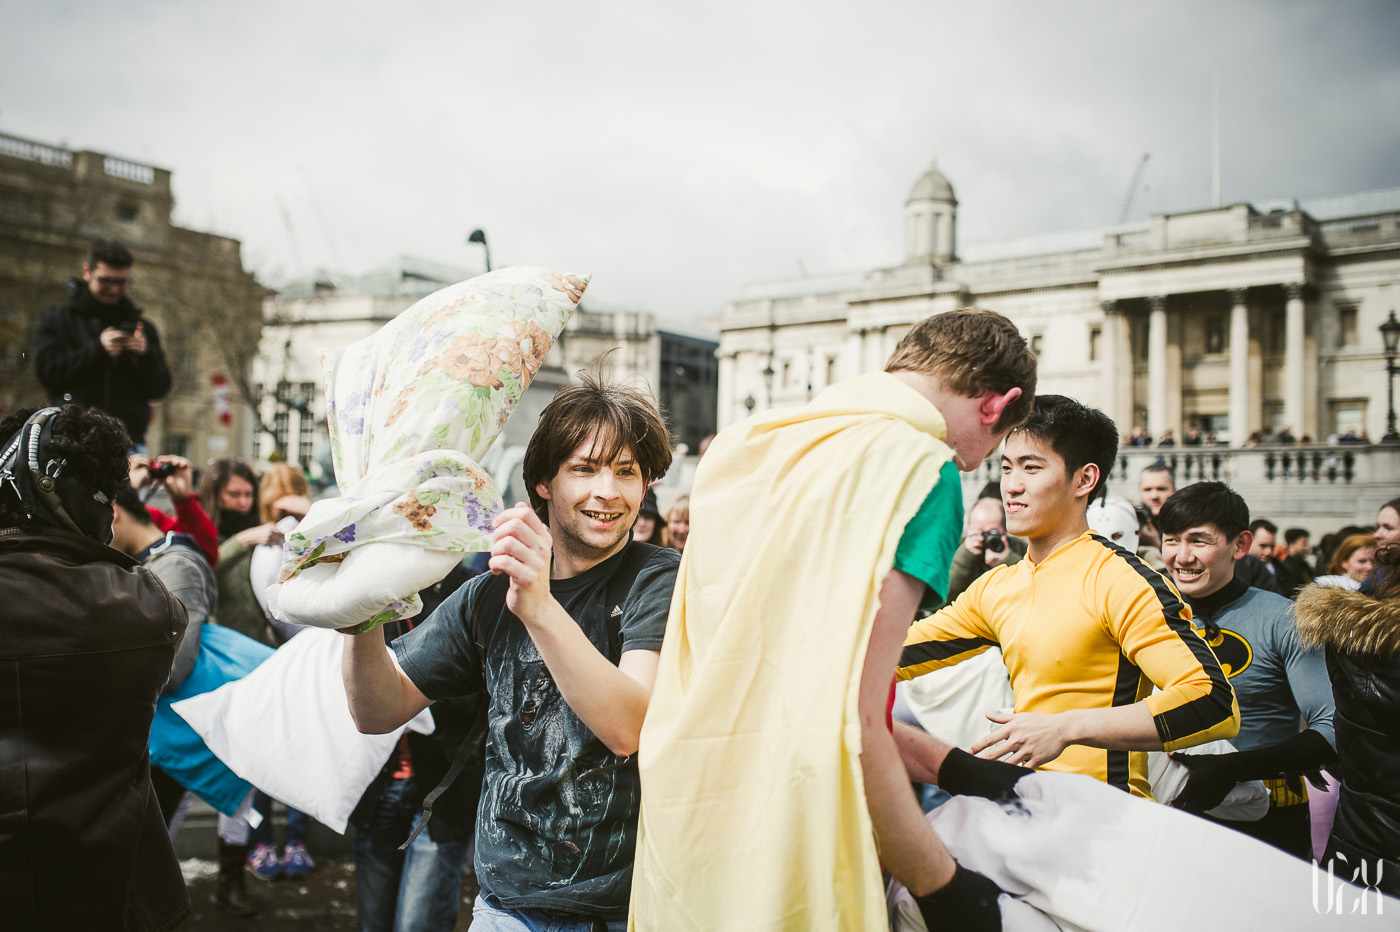 International Pillow Fight Day In London 2015 Street Photography Pagalviu Musis 17